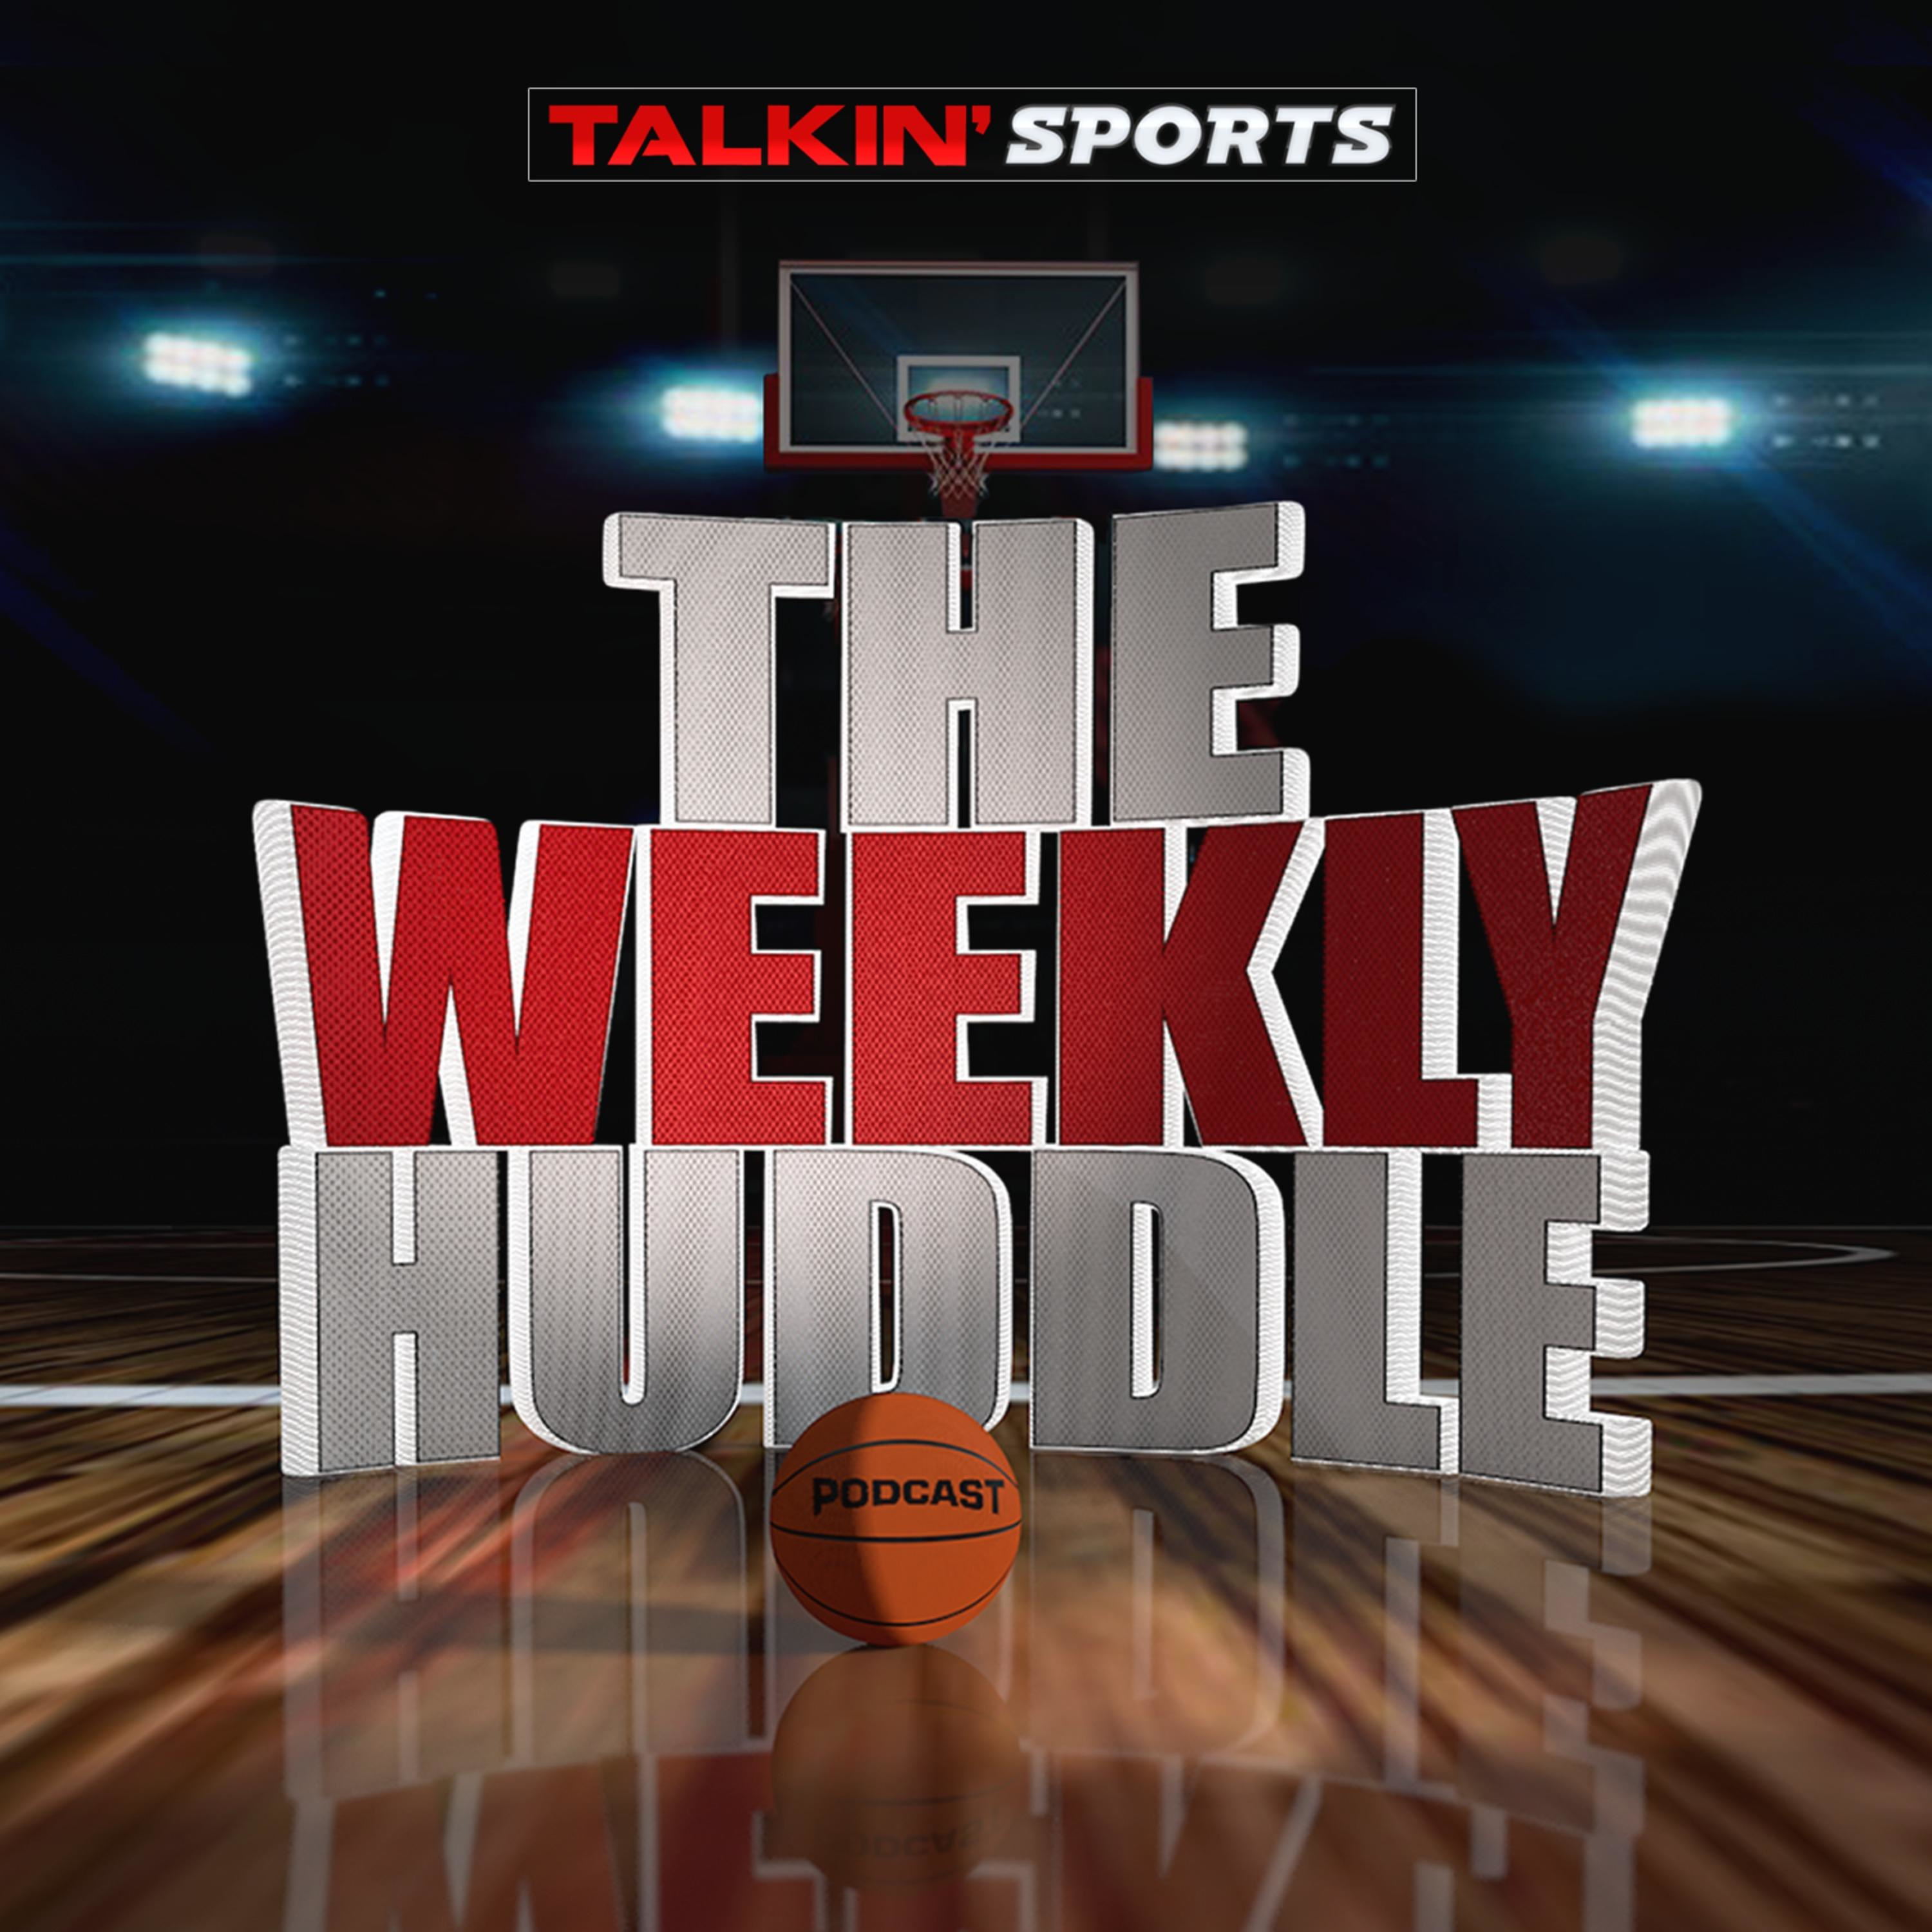 Talkin' Sports - The Weekly Huddle